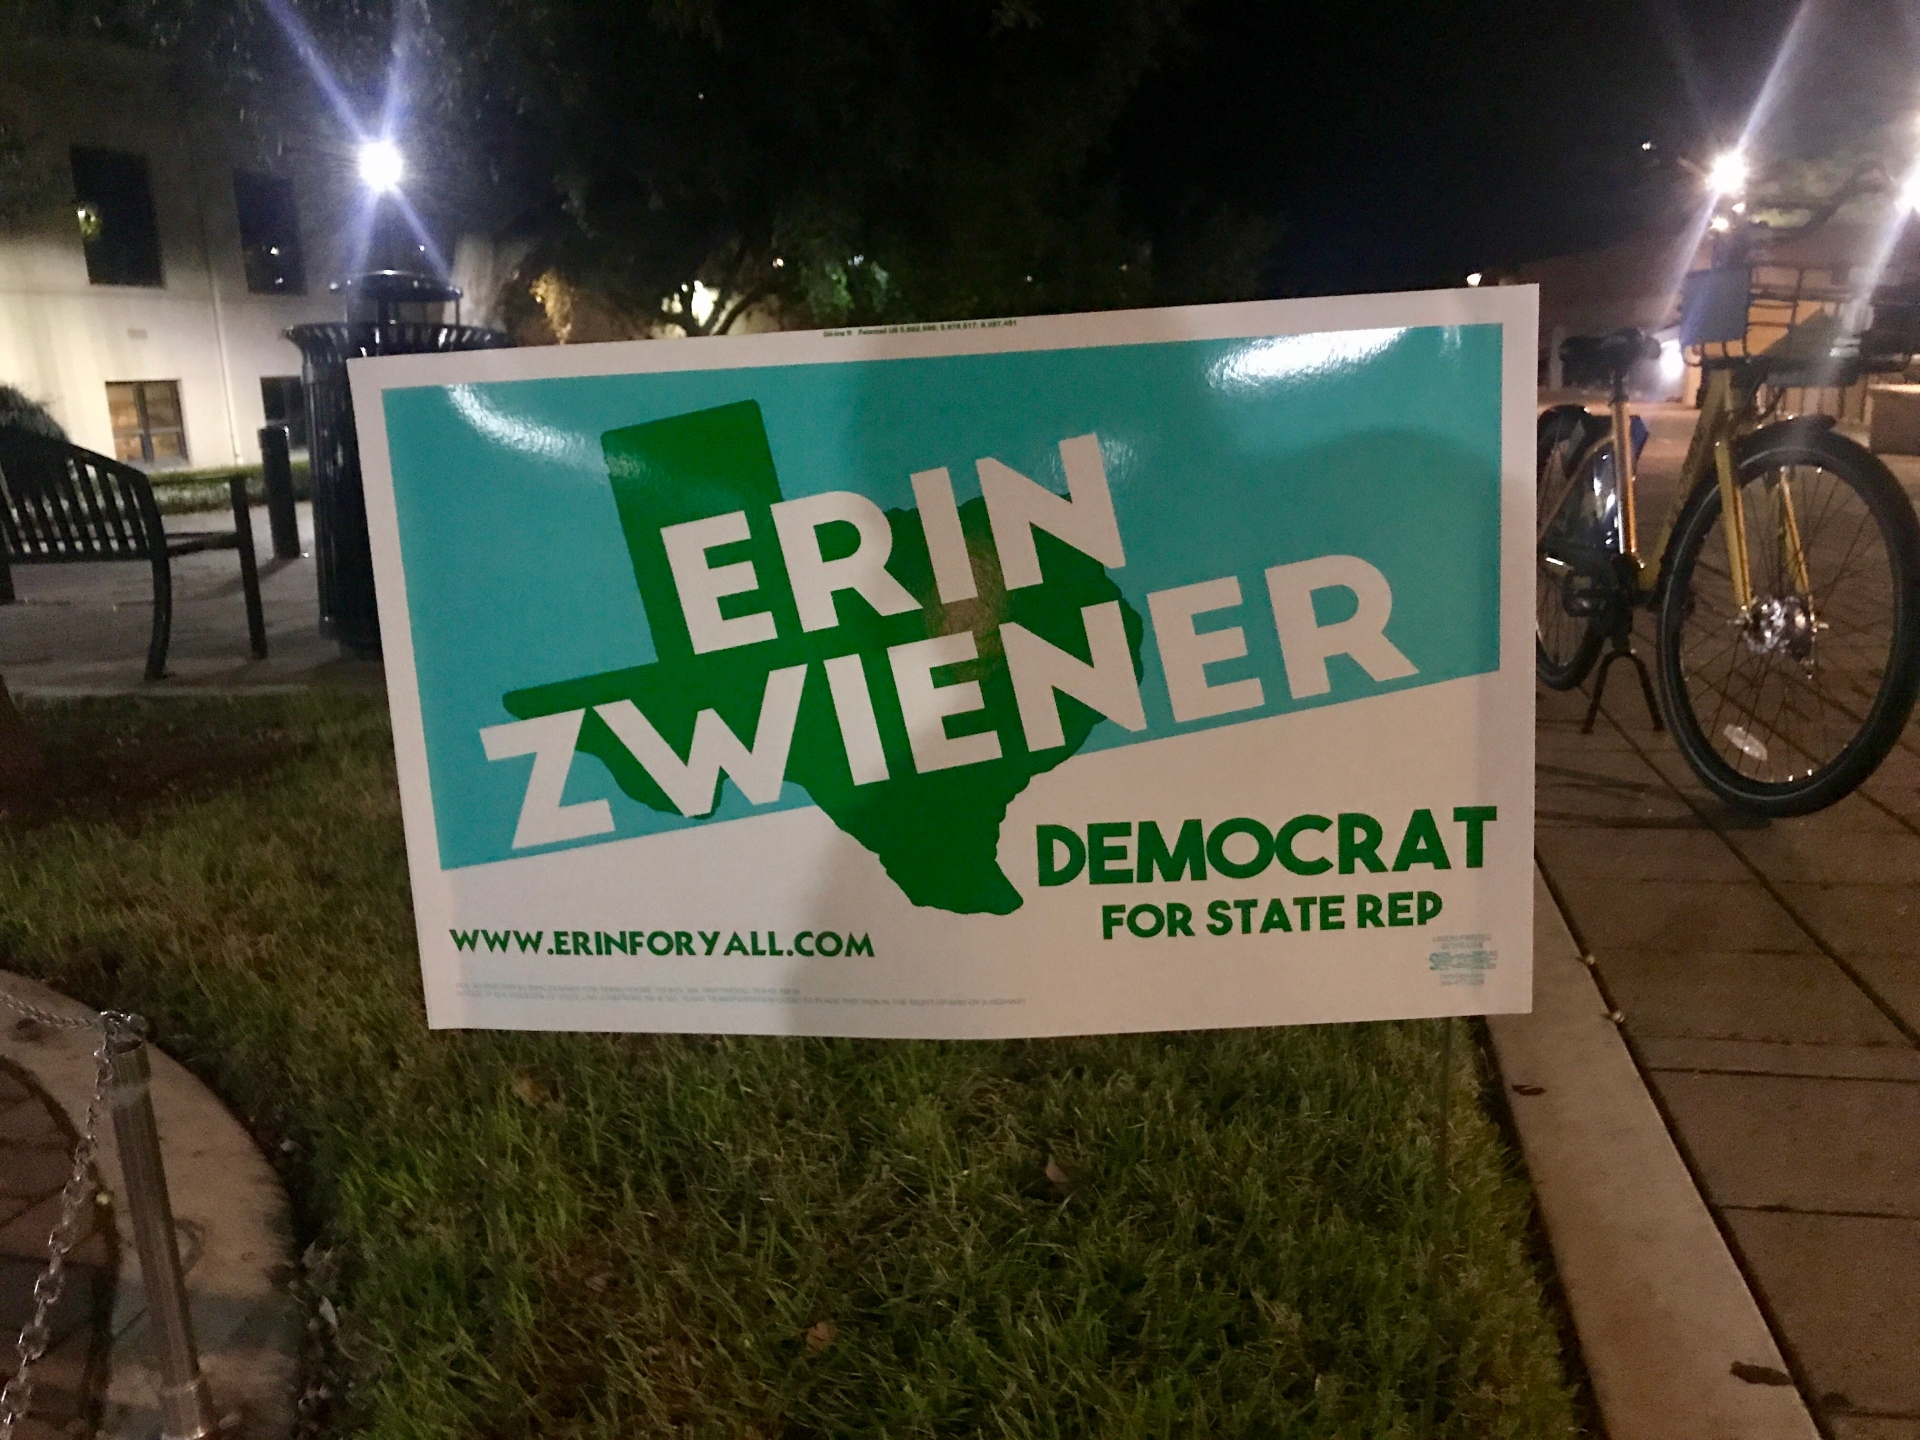 Erin Zwiener's name on a green Texas and blue background.